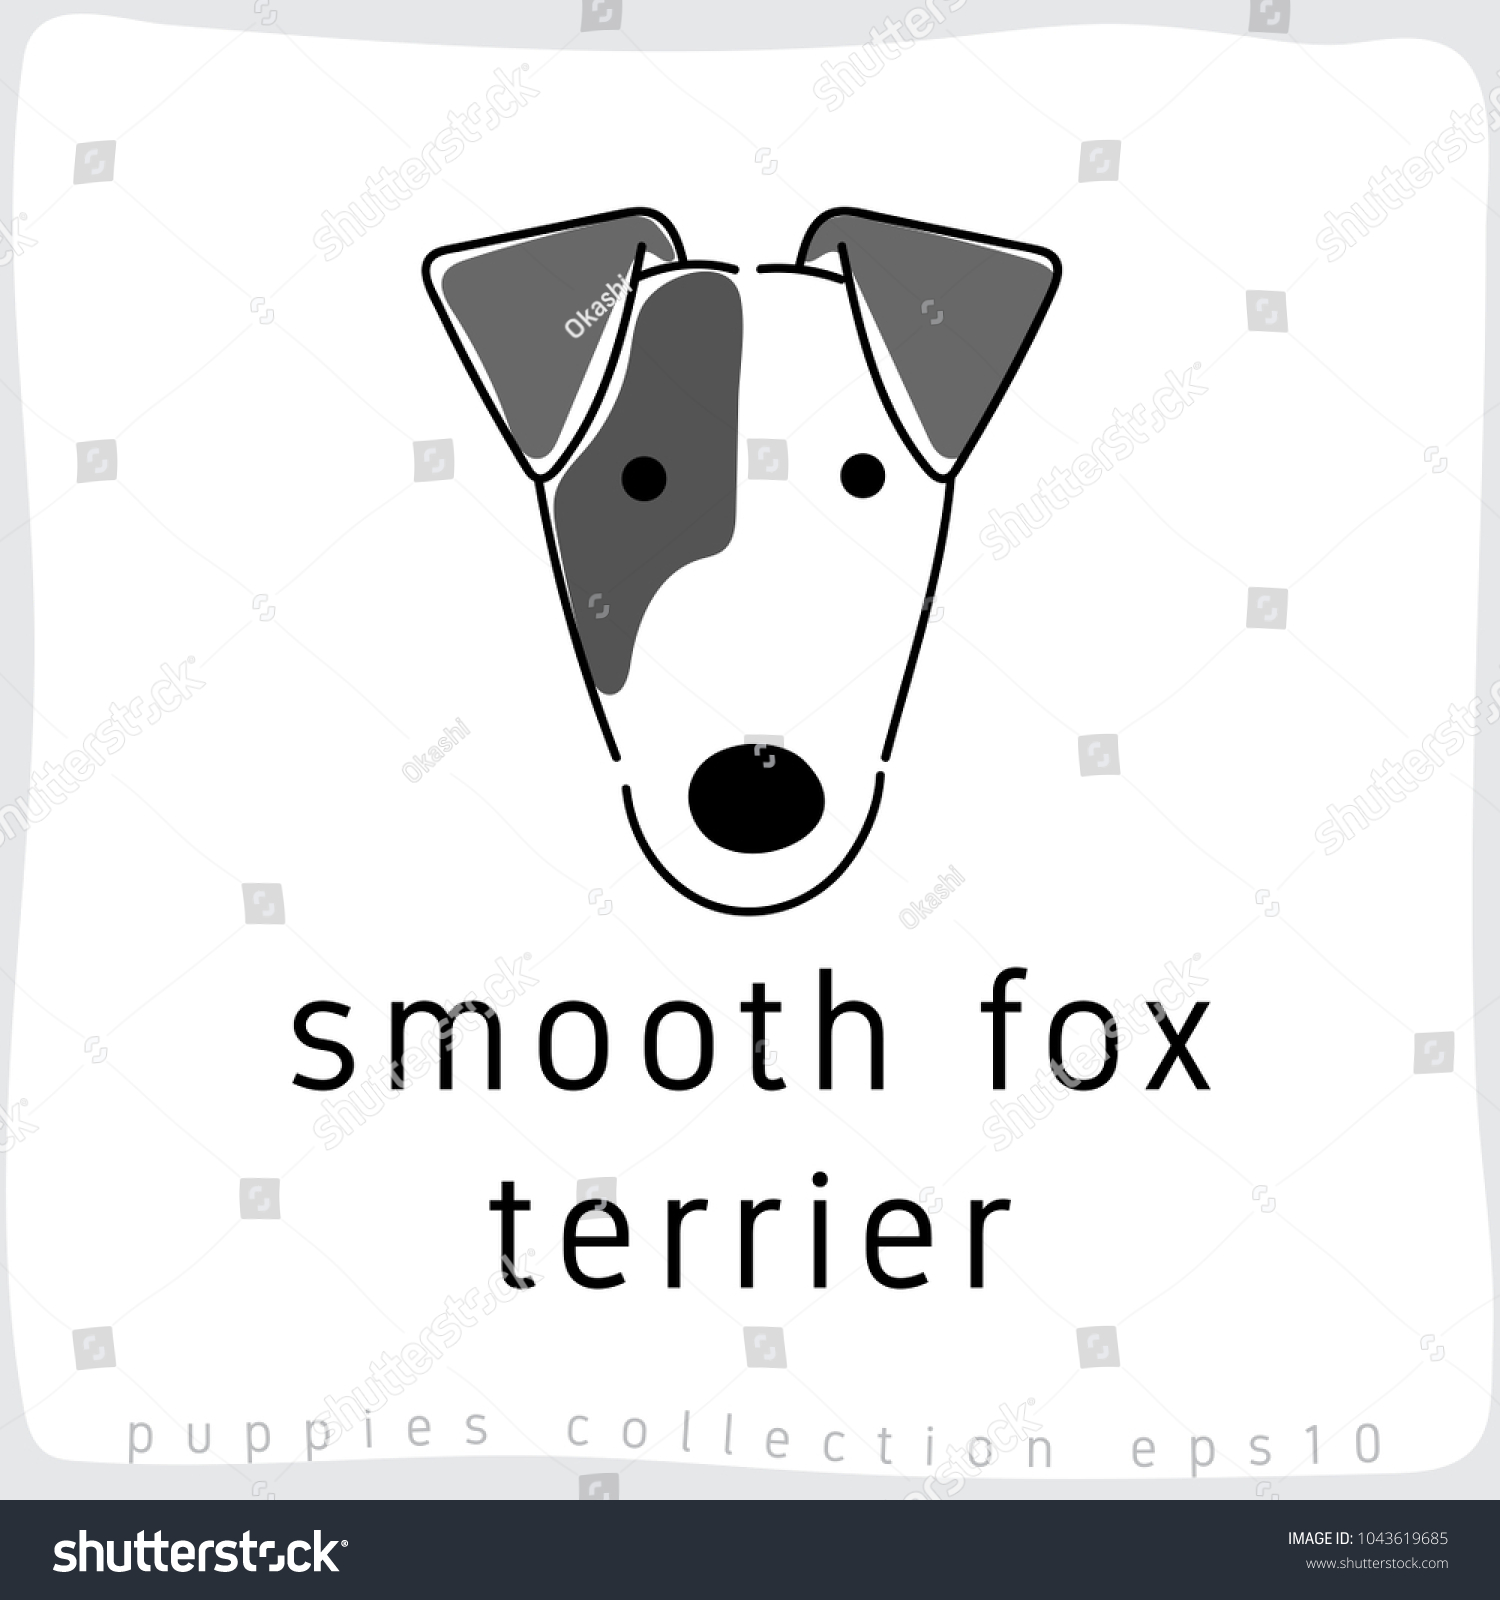 Smooth Fox Terrier Dog Breed Collection Stock Vector 1043619685 ...